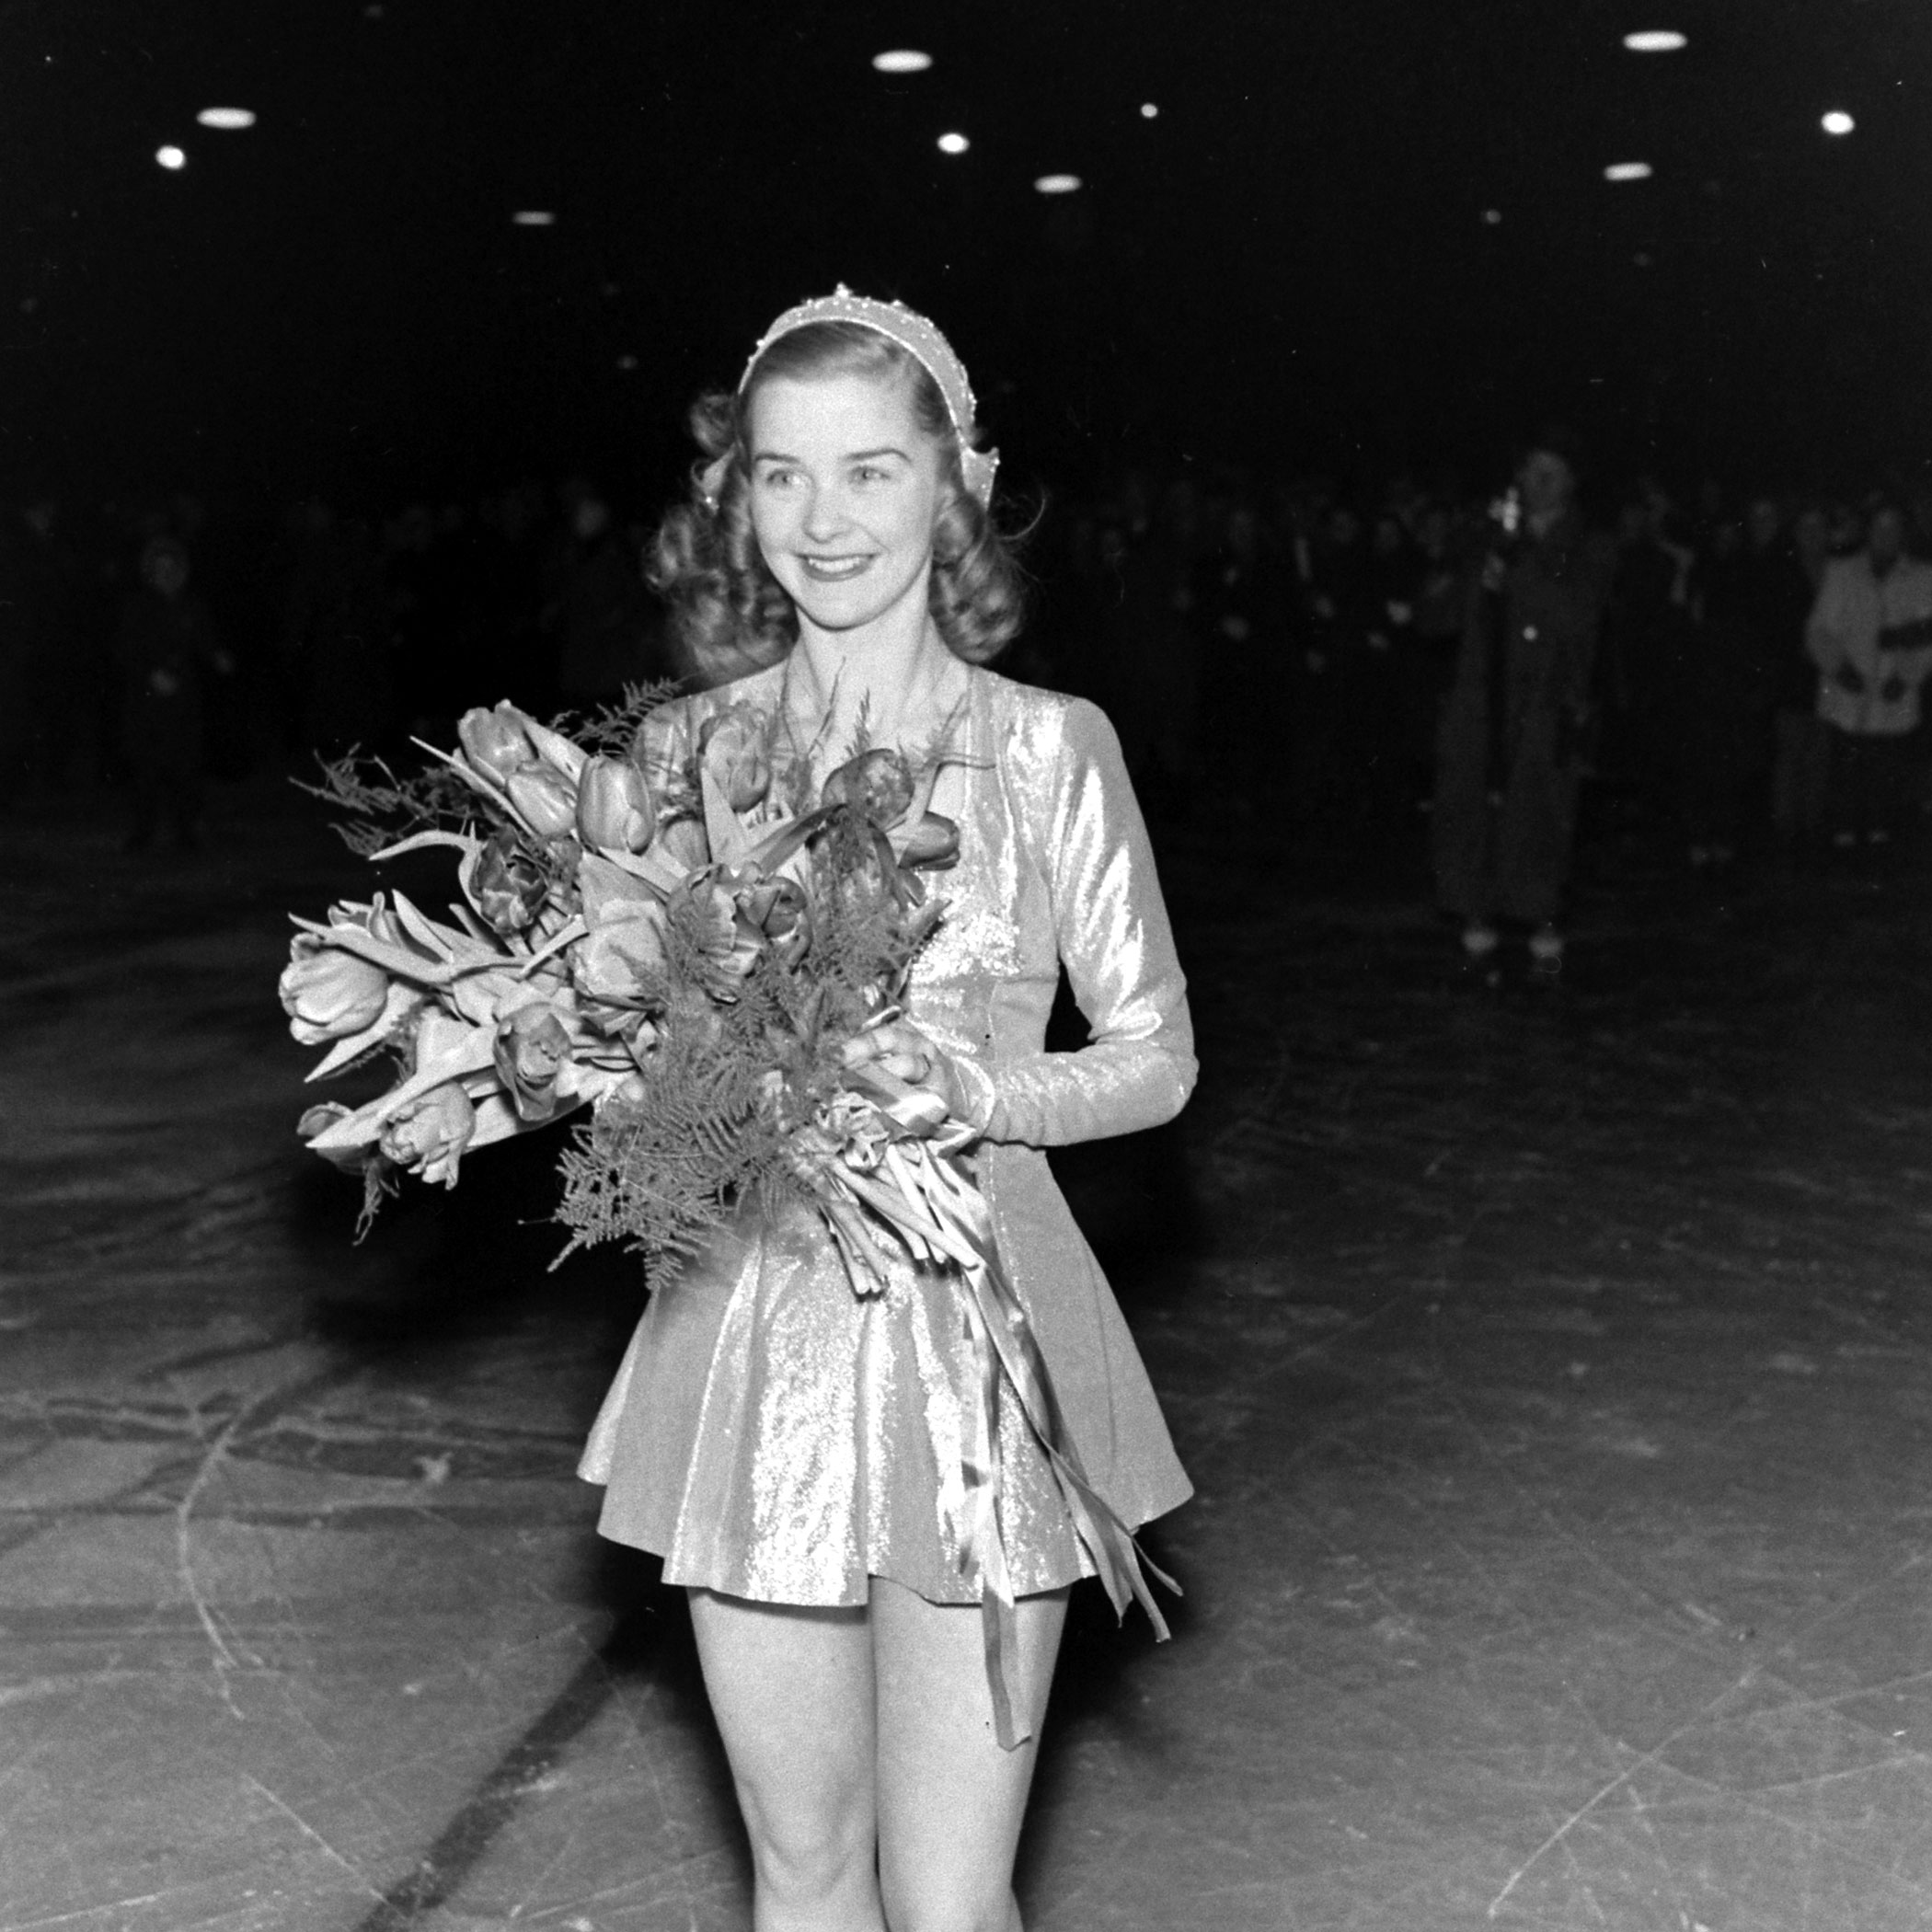 Barbara Ann Scott with flowers at the World Figure Skating Championship in Stockholm, Sweden, 1947.